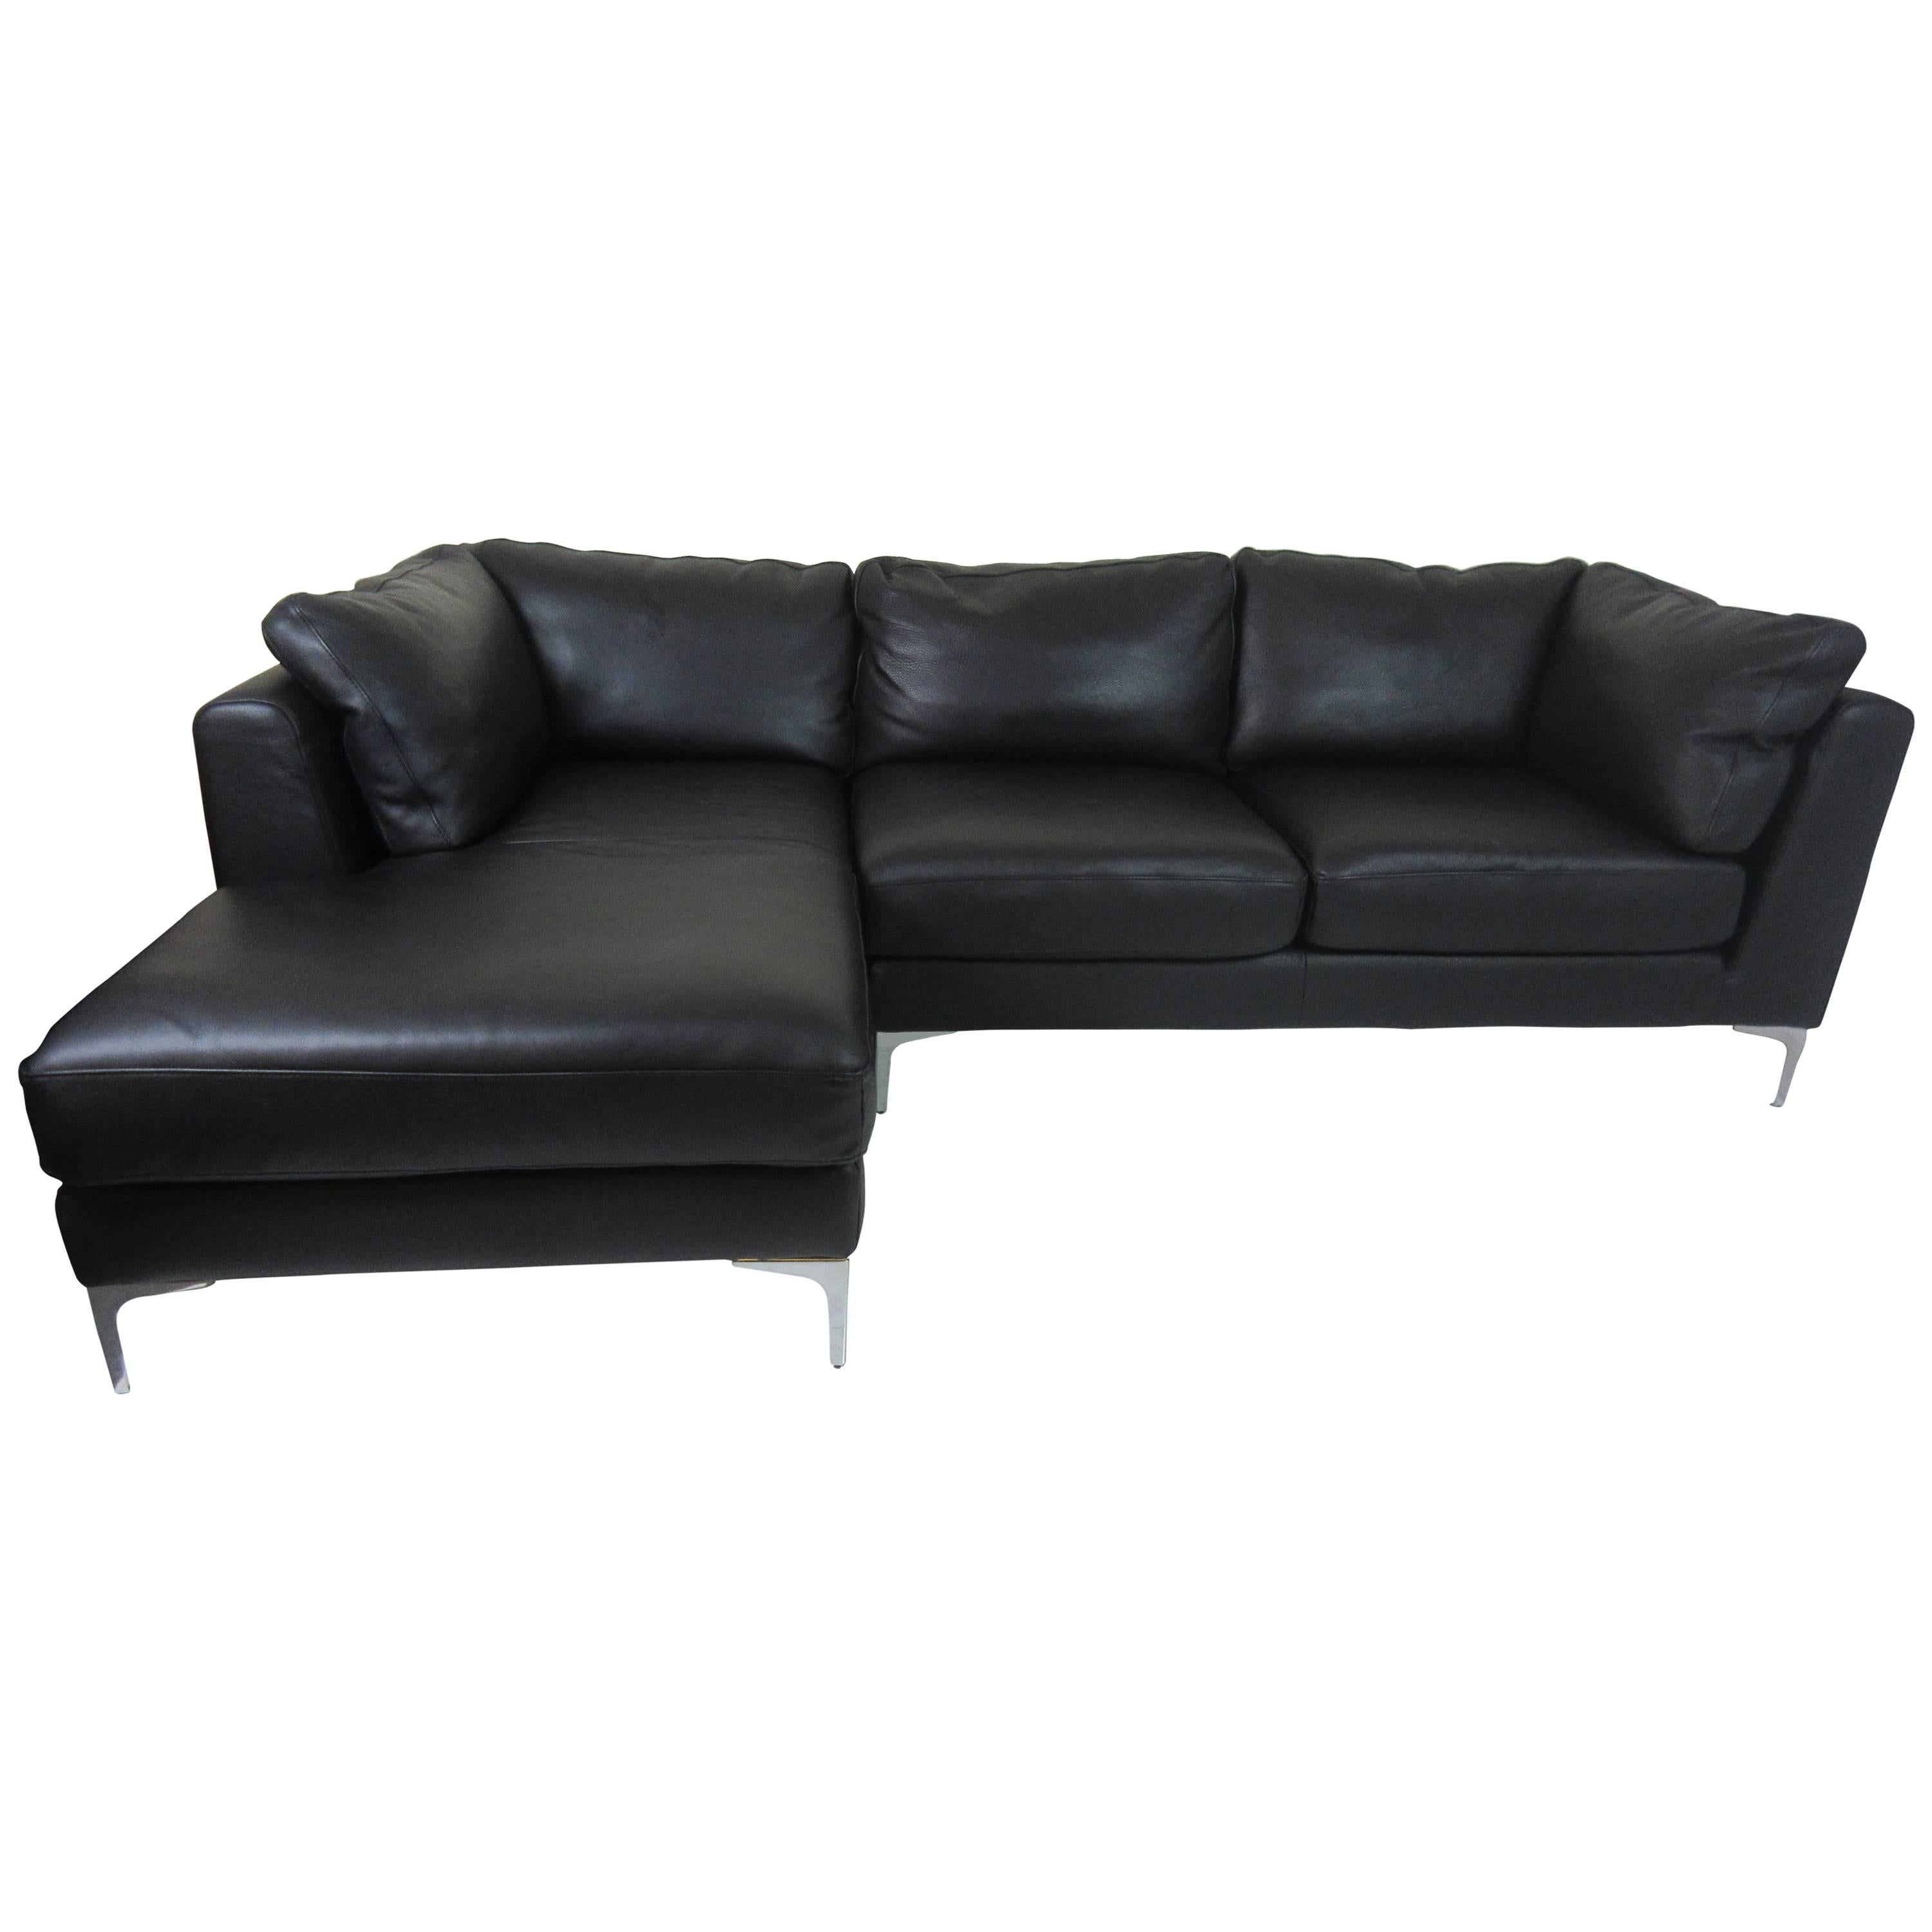 Design Within Reach Nicoletti Sectional Sofa In Black Leather For Sale